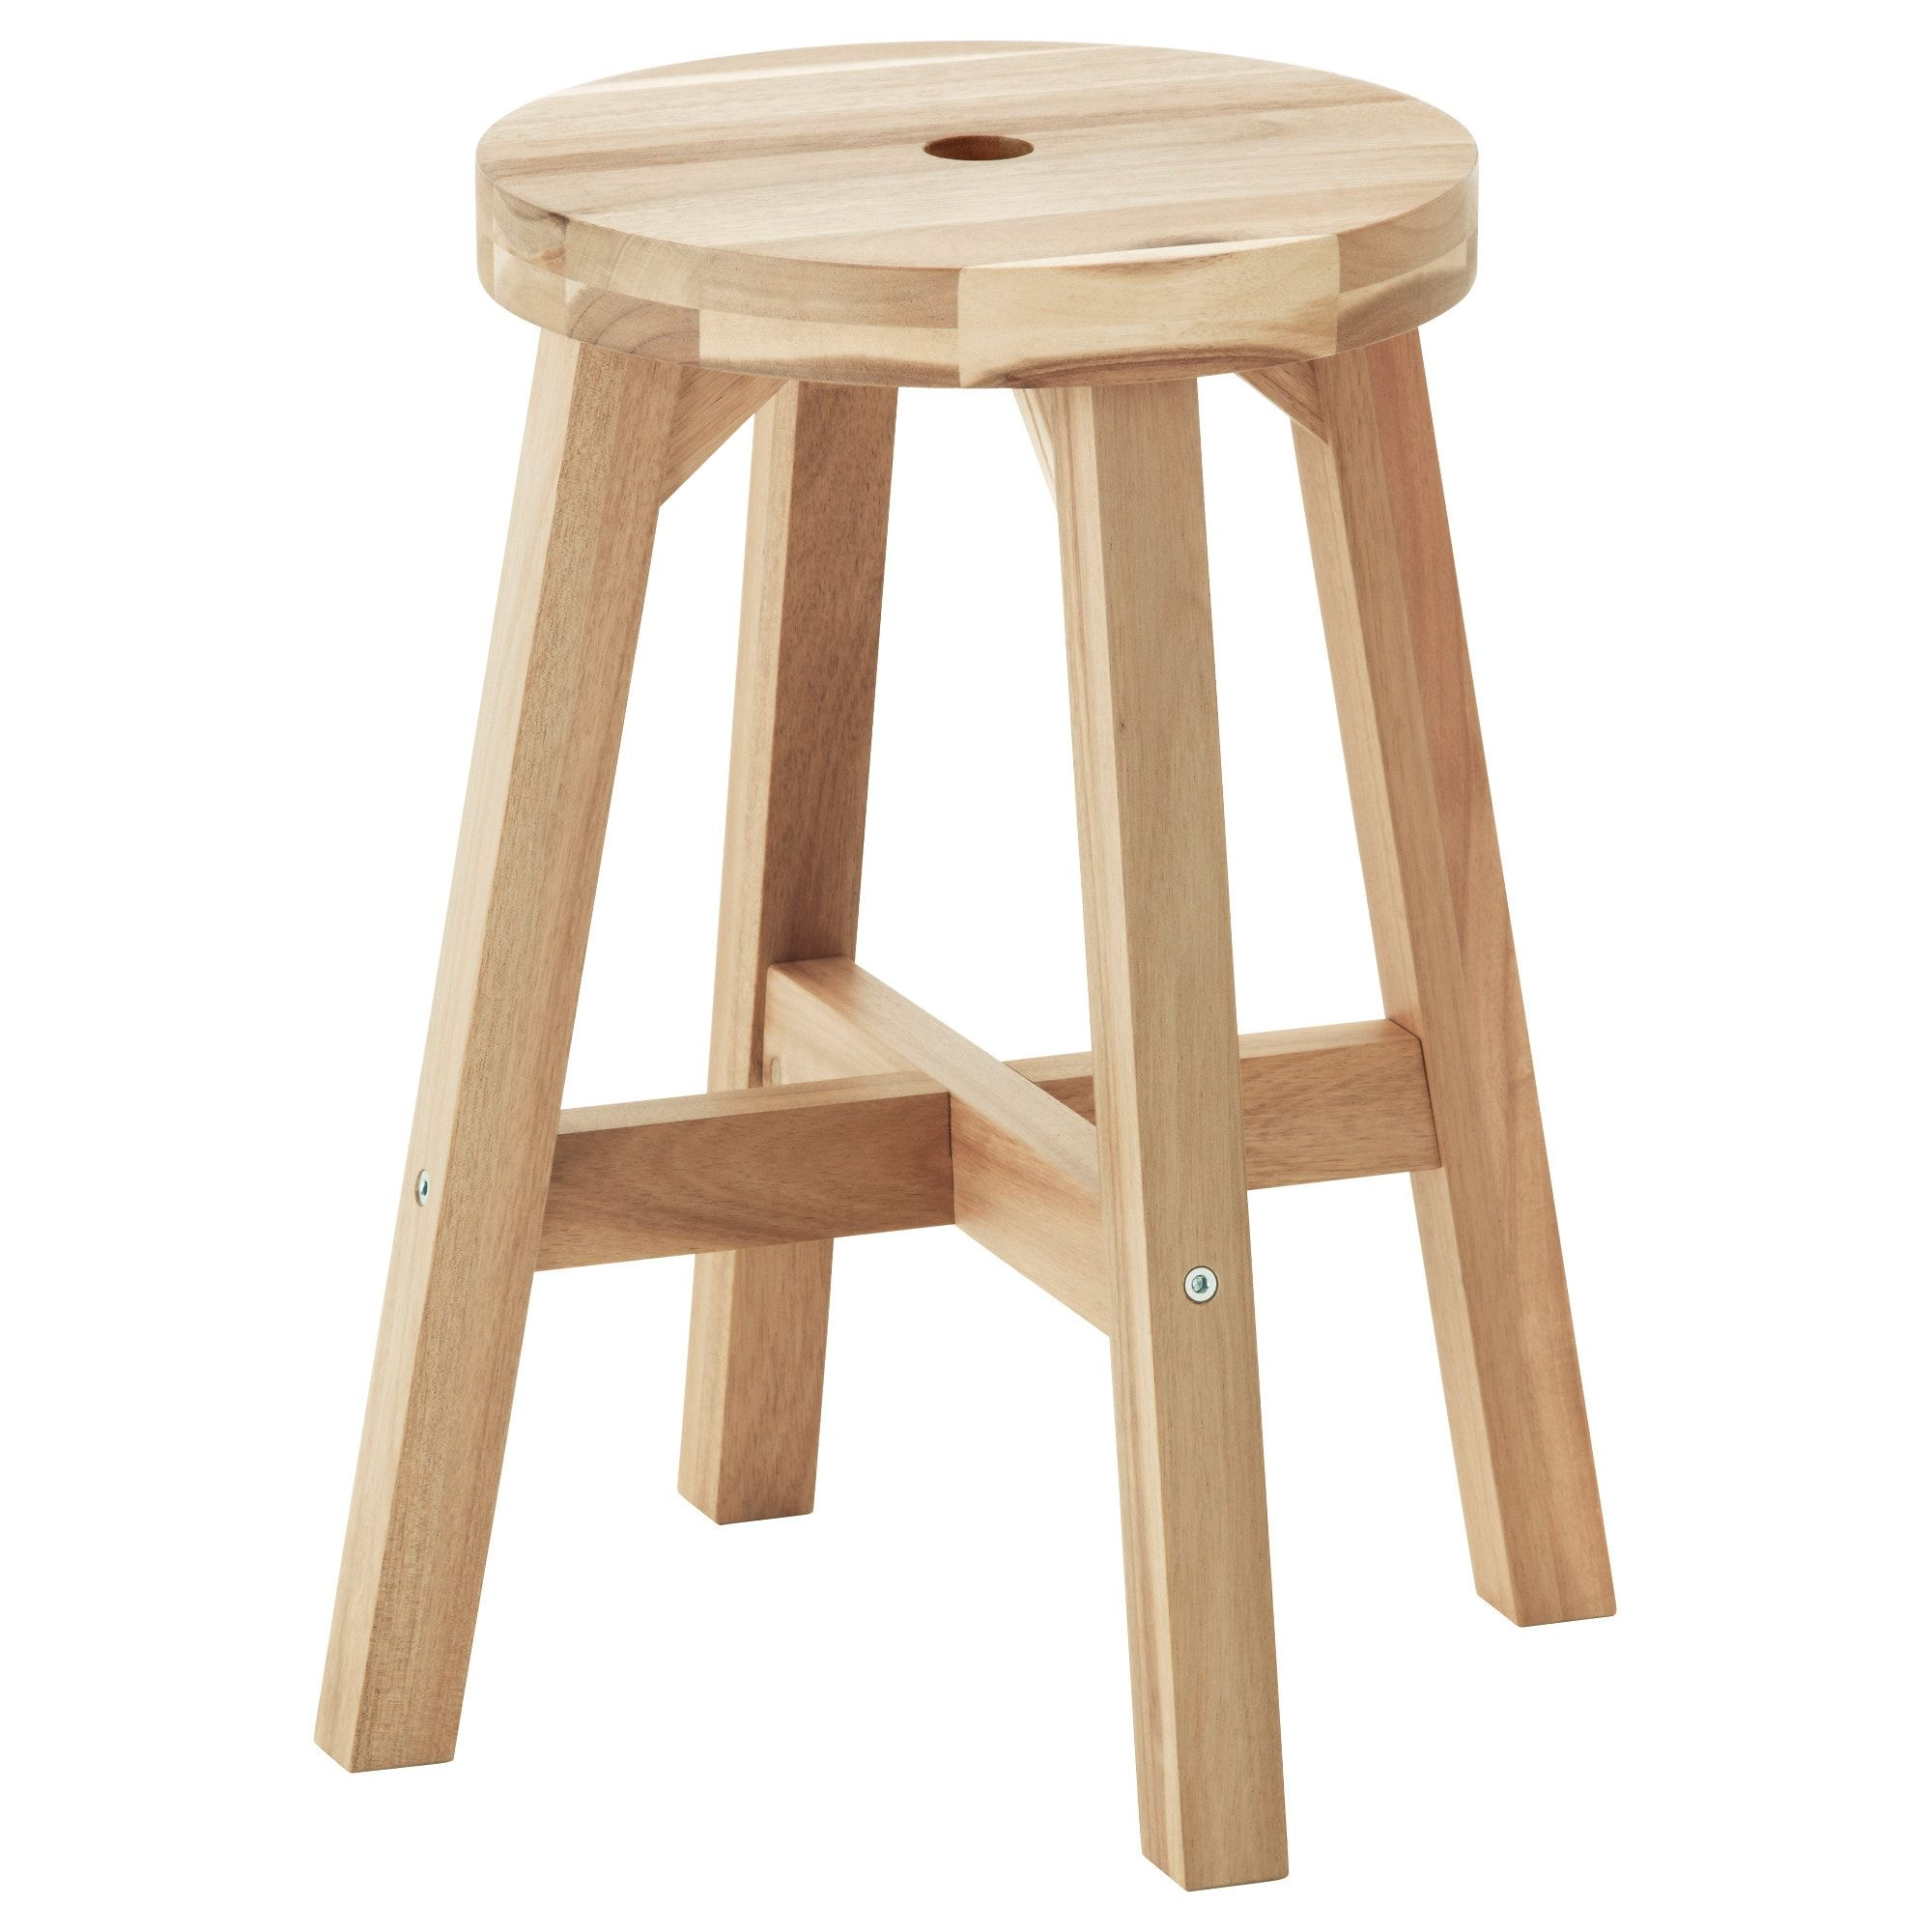 Skogsta Stool Ikea Finish As Toadstool Or On Top